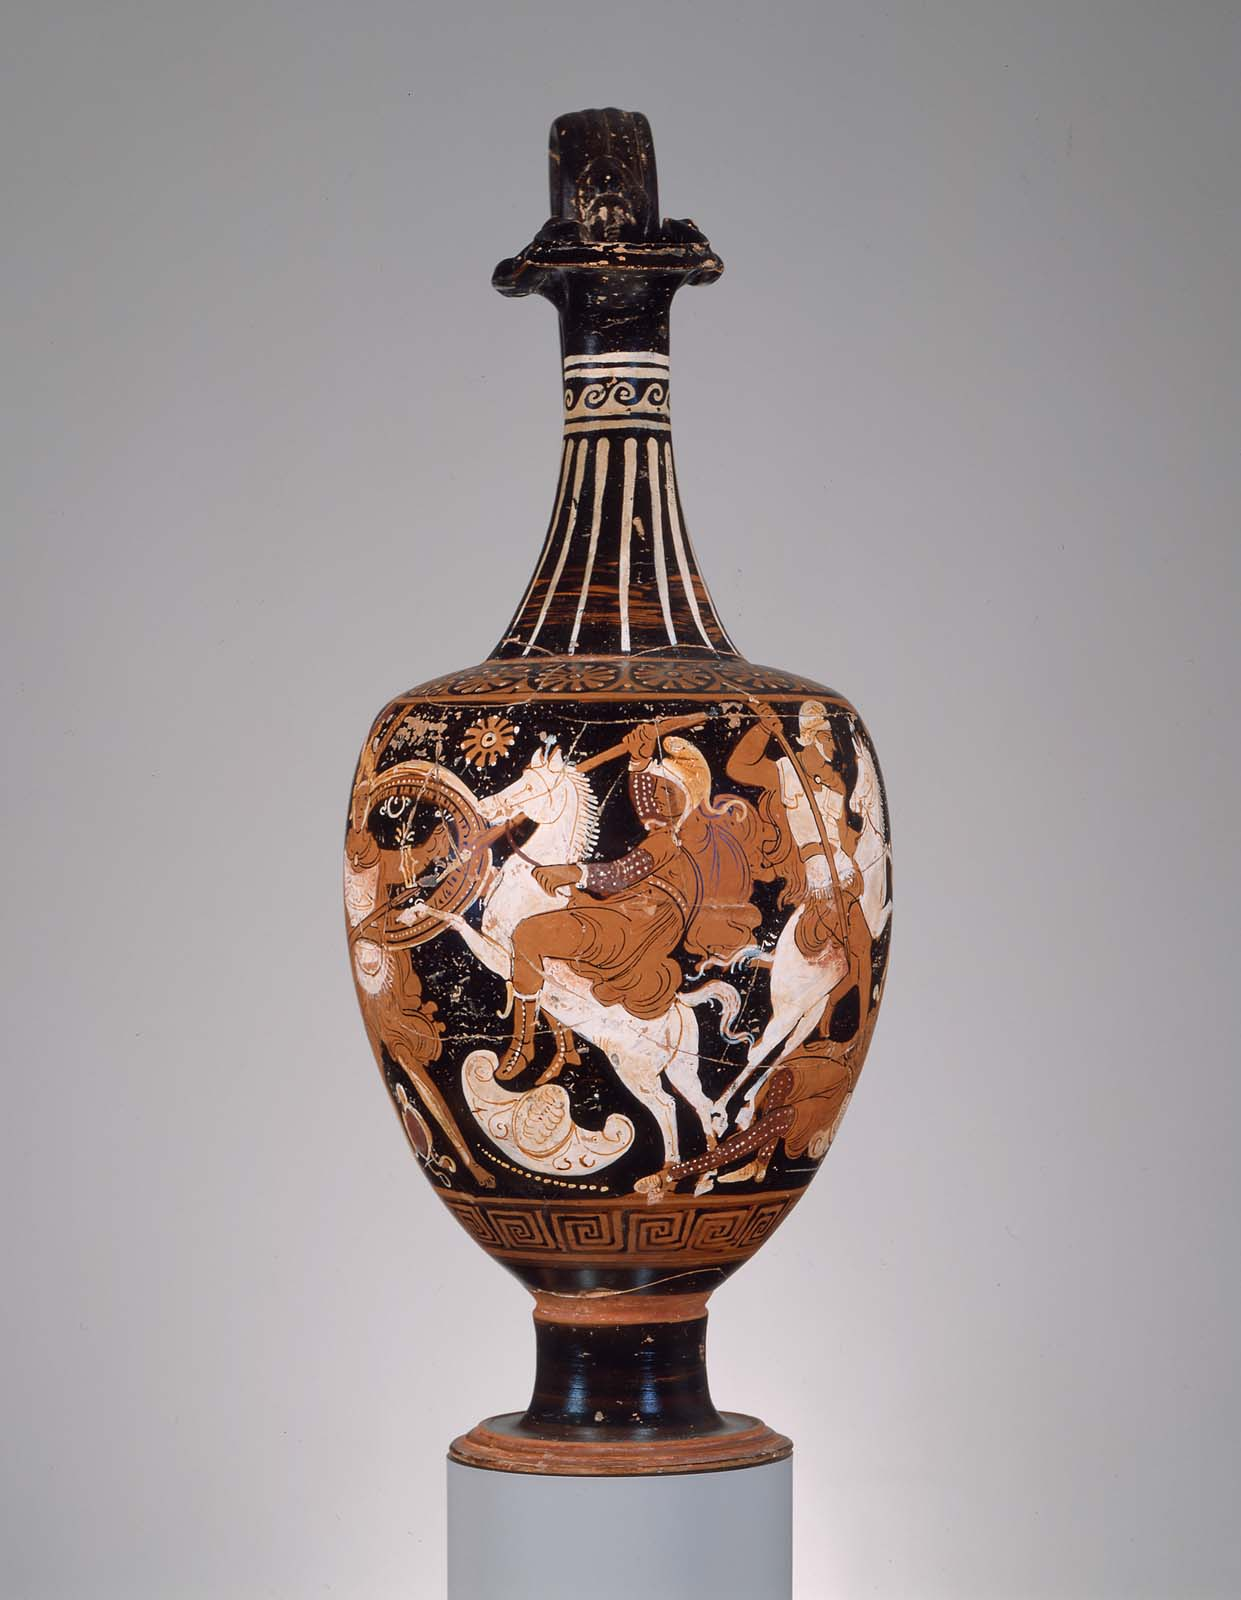 Oenochoe portraying a battle between the Greeks and Amazons. From the Hellenistic Period, about 320-310 BC, collection of the Museum of Fine Arts Boston.